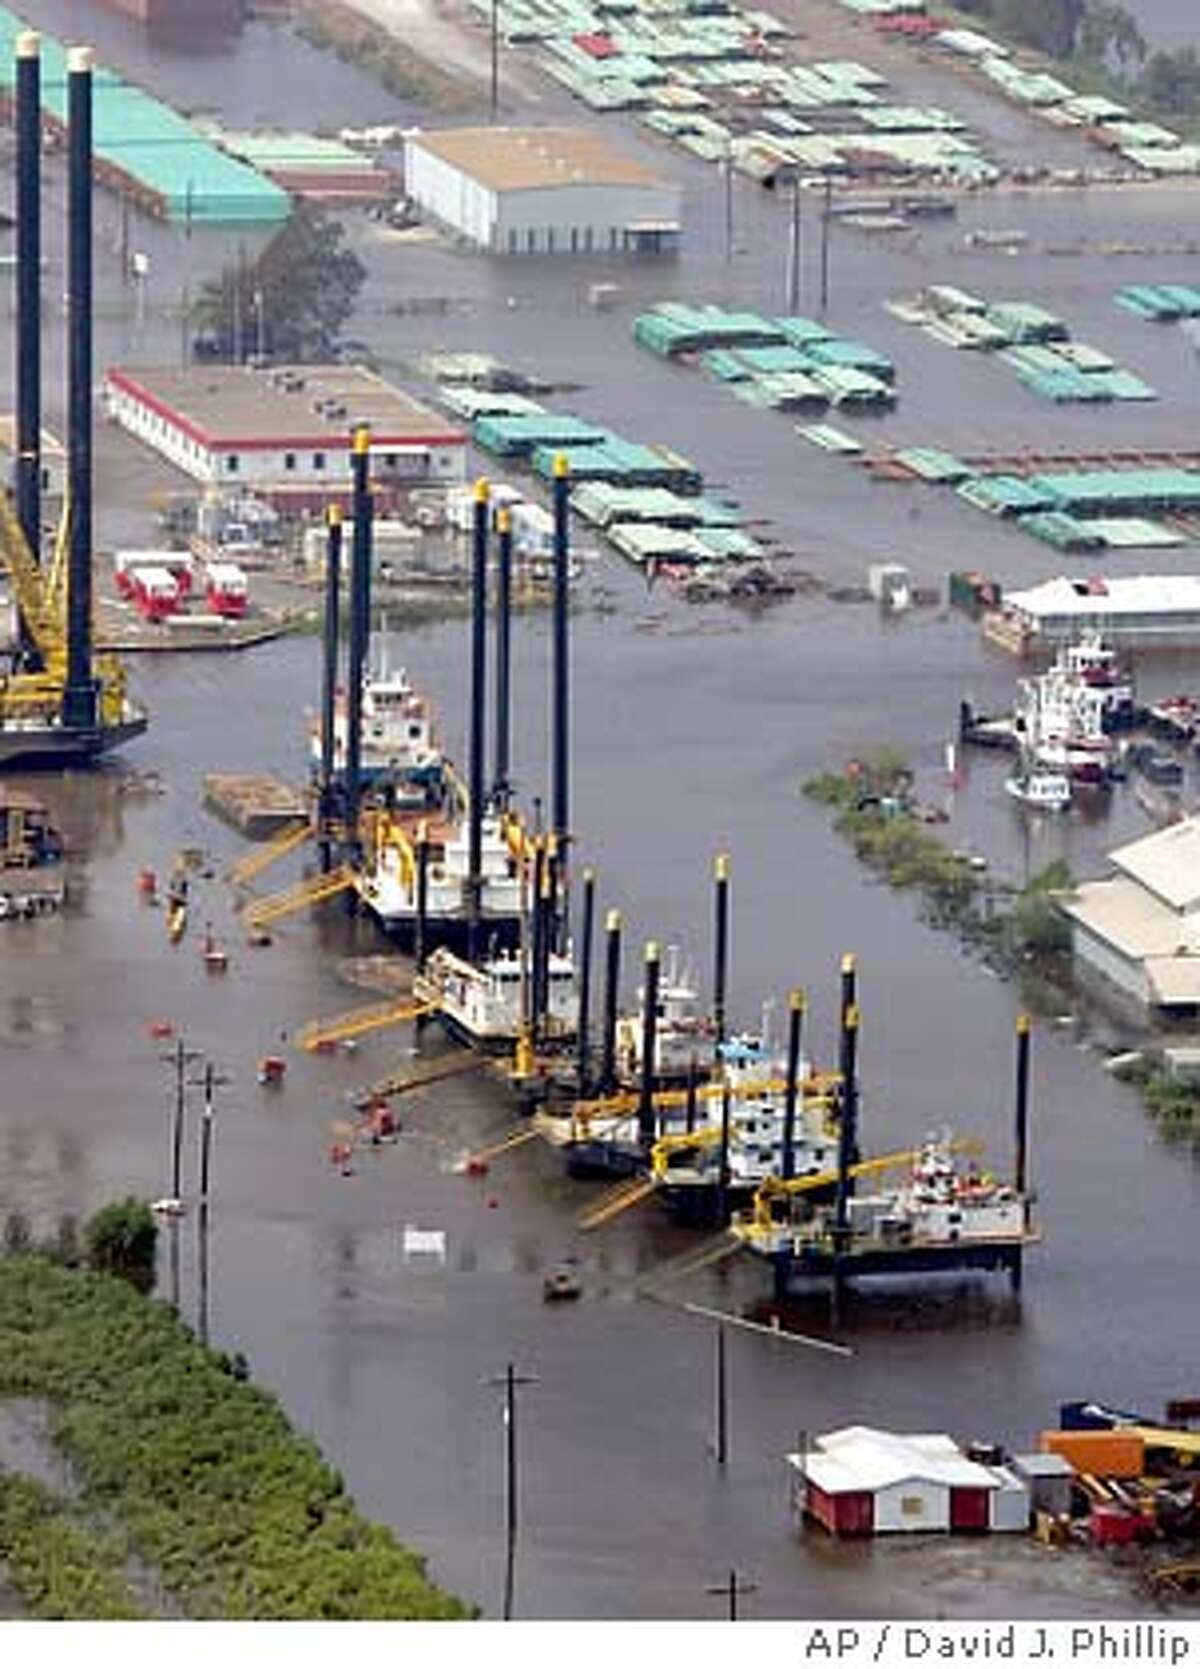 ** FILE **An oil rig platform contruction facility is surrounded by floodwaters in the aftermath of Hurricane Rita in a file photo from Sept. 25, 2005 near New Iberia, La. When drivers line up to pay $3 a gallon for gasoline and offshore oil rigs go missing, it's much more than an energy story. It's the story of the economy. (AP Photo/David J. Phillip, File) SEPT. 25, 2005 FILE PHOTO